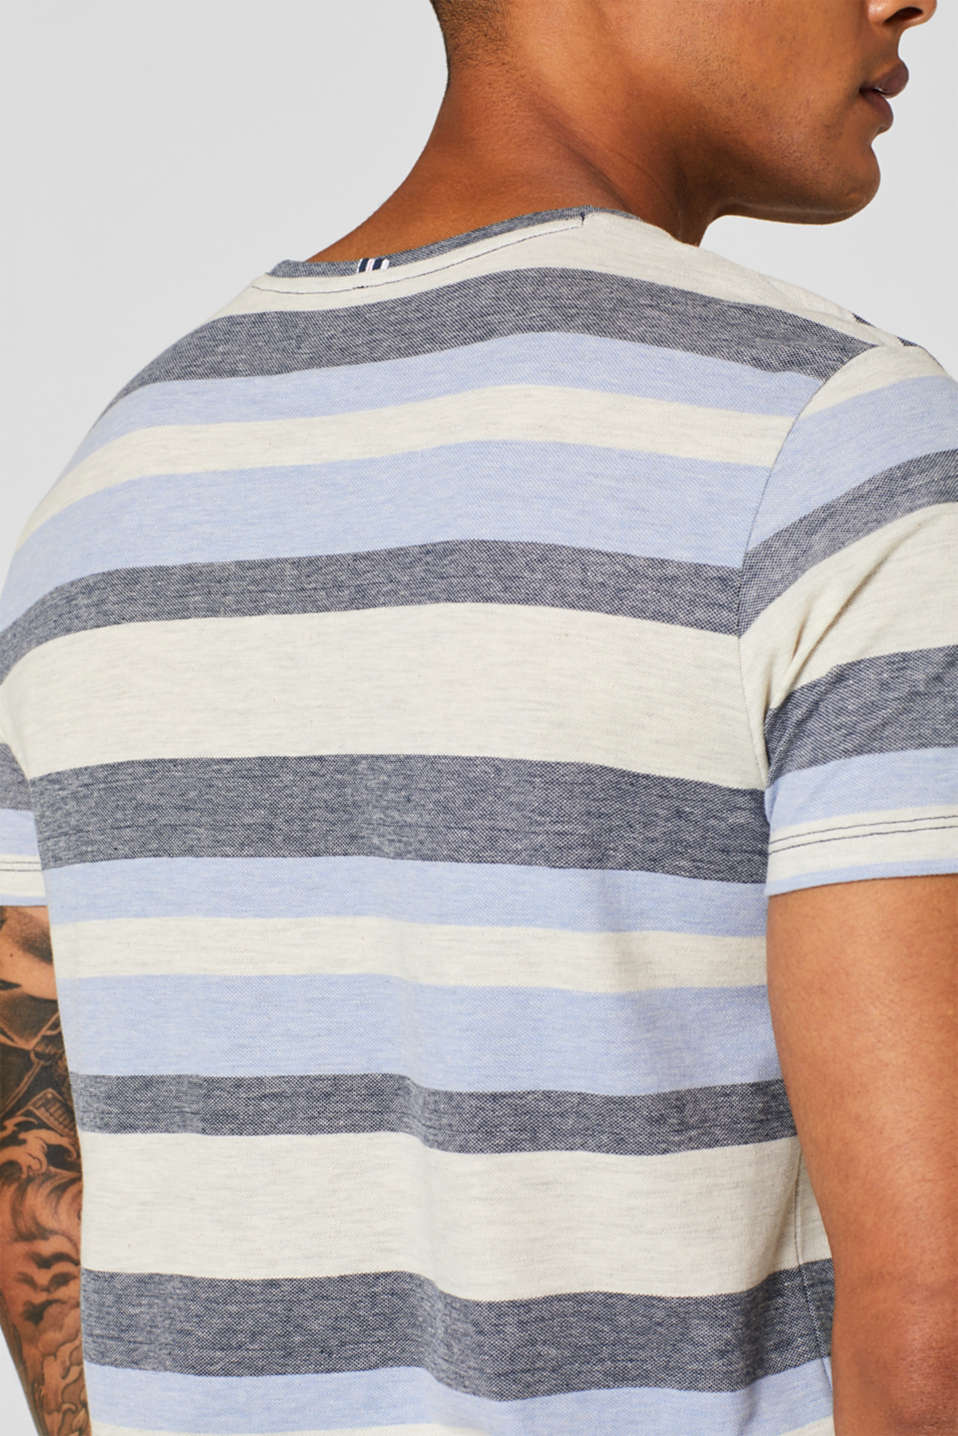 Piqué T-shirt with stripes, NAVY, detail image number 5